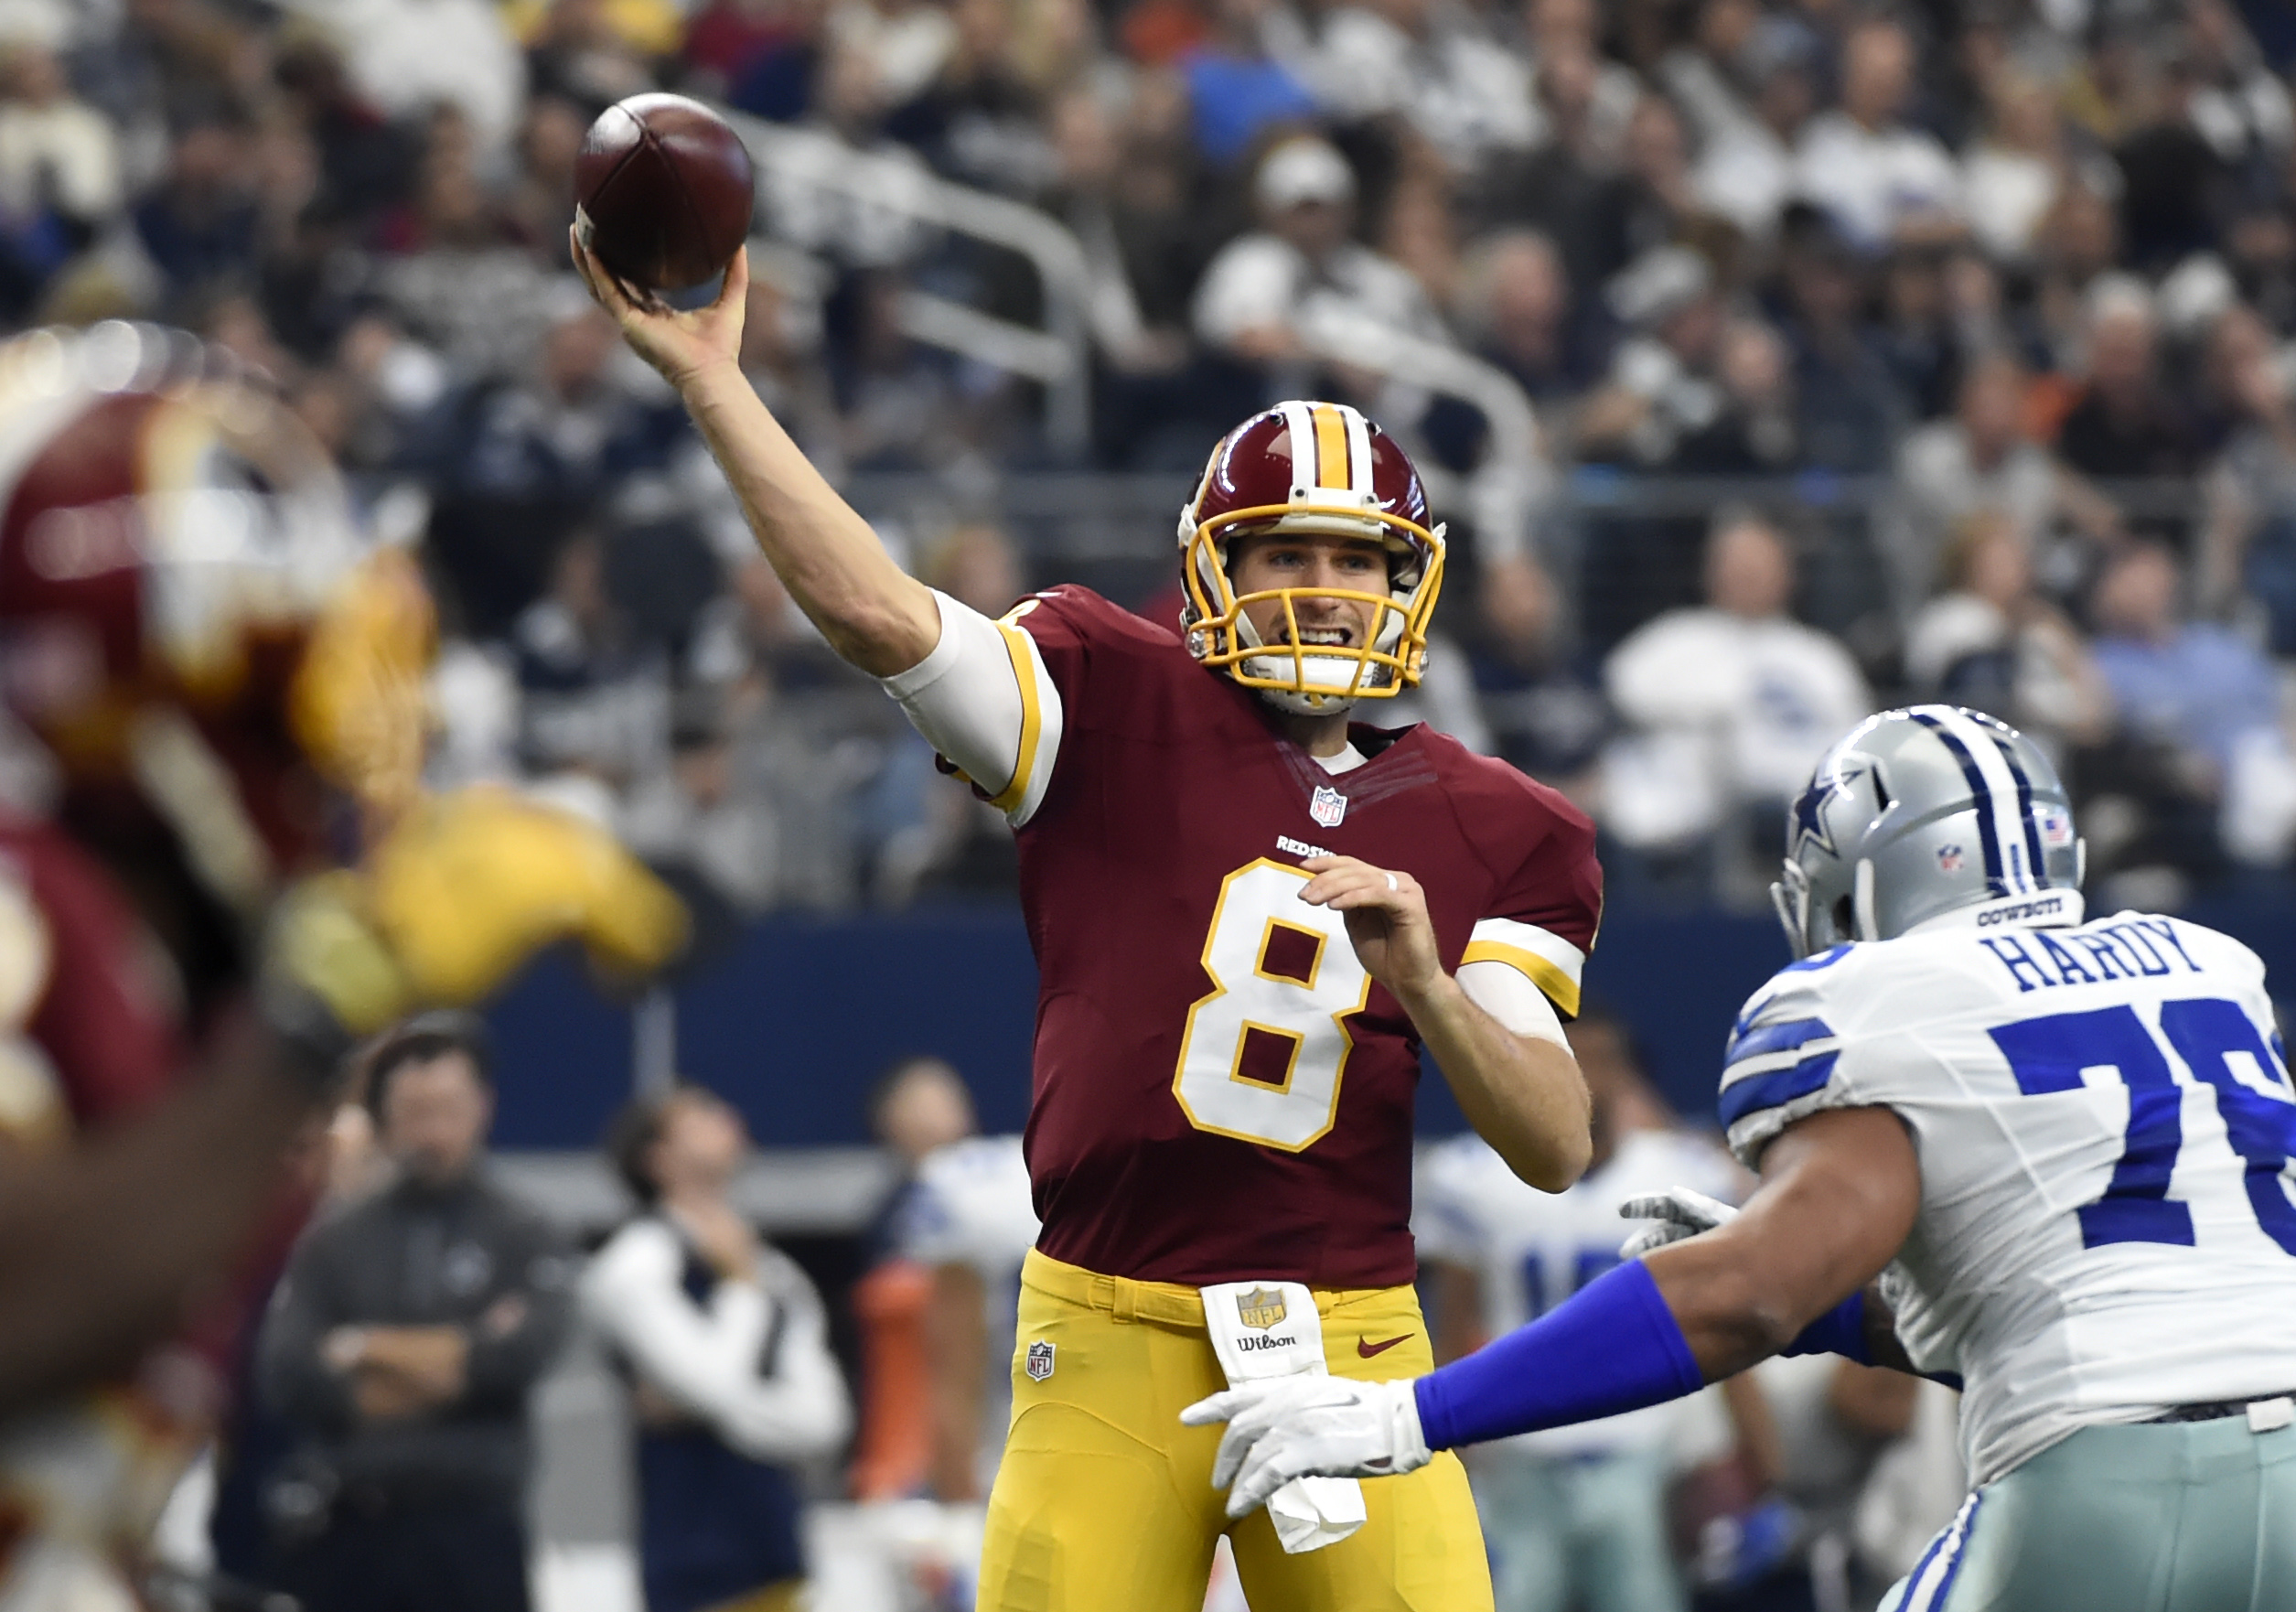 Kirk Cousins plays very well against Dallas